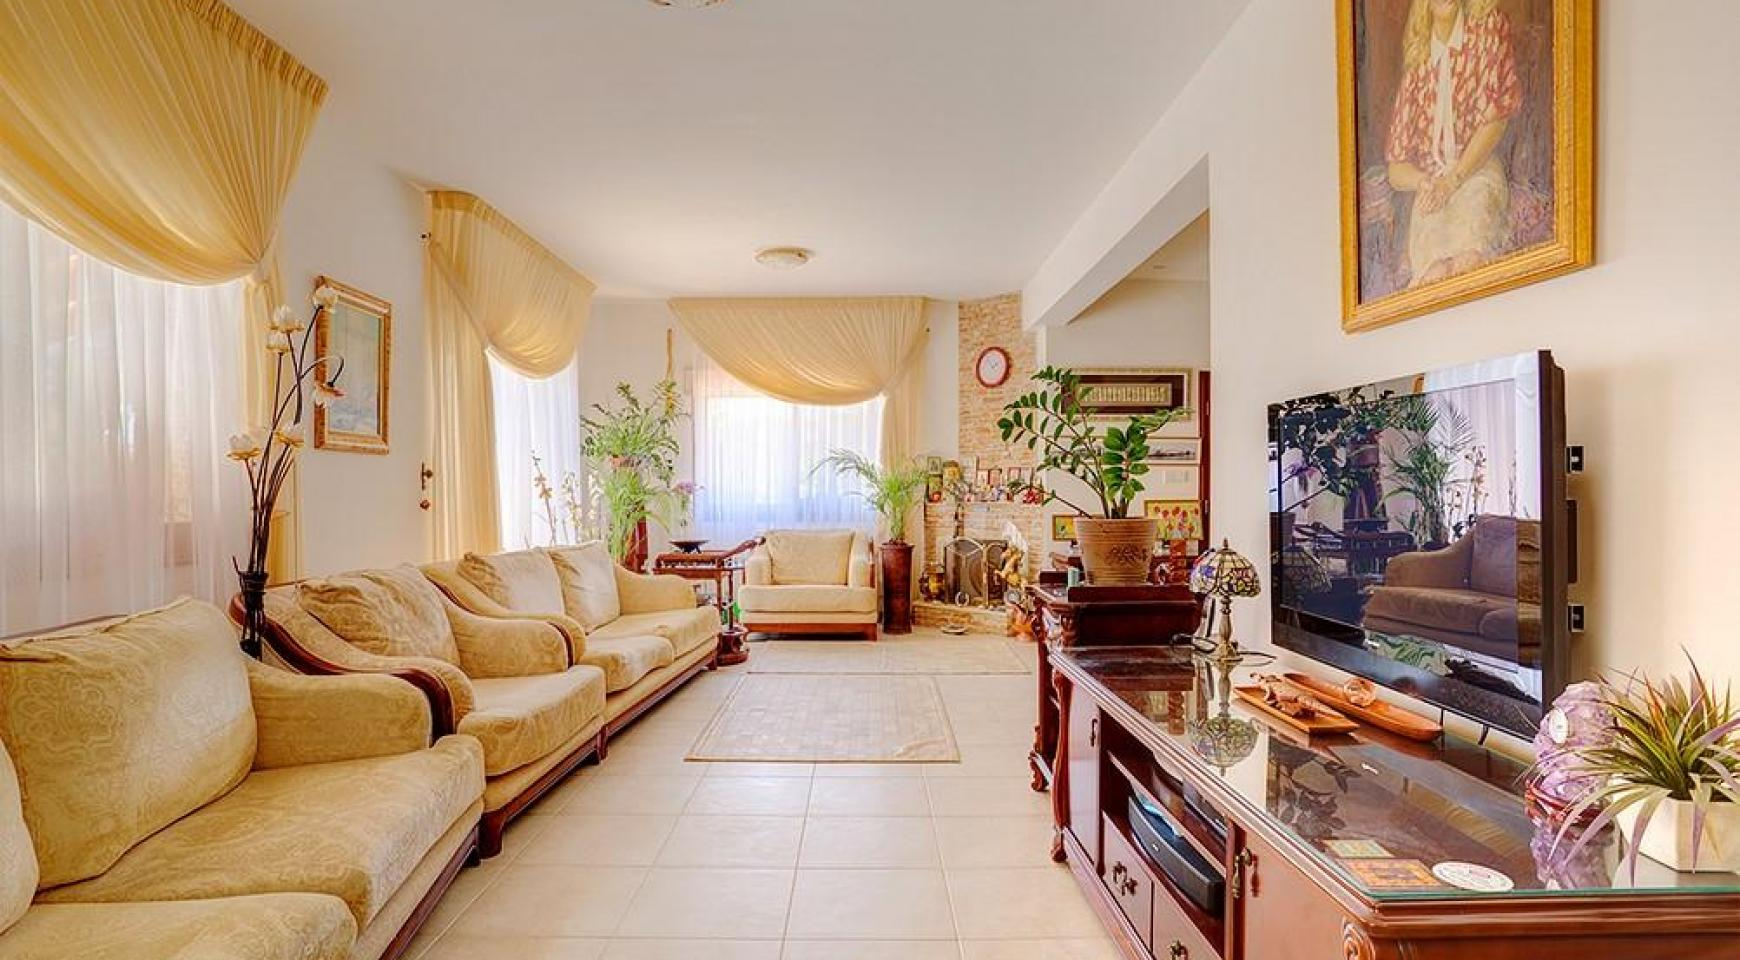 SPECIAL OFFER! Beautiful Spacious 3 Bedroom Villa in Souni  - 12